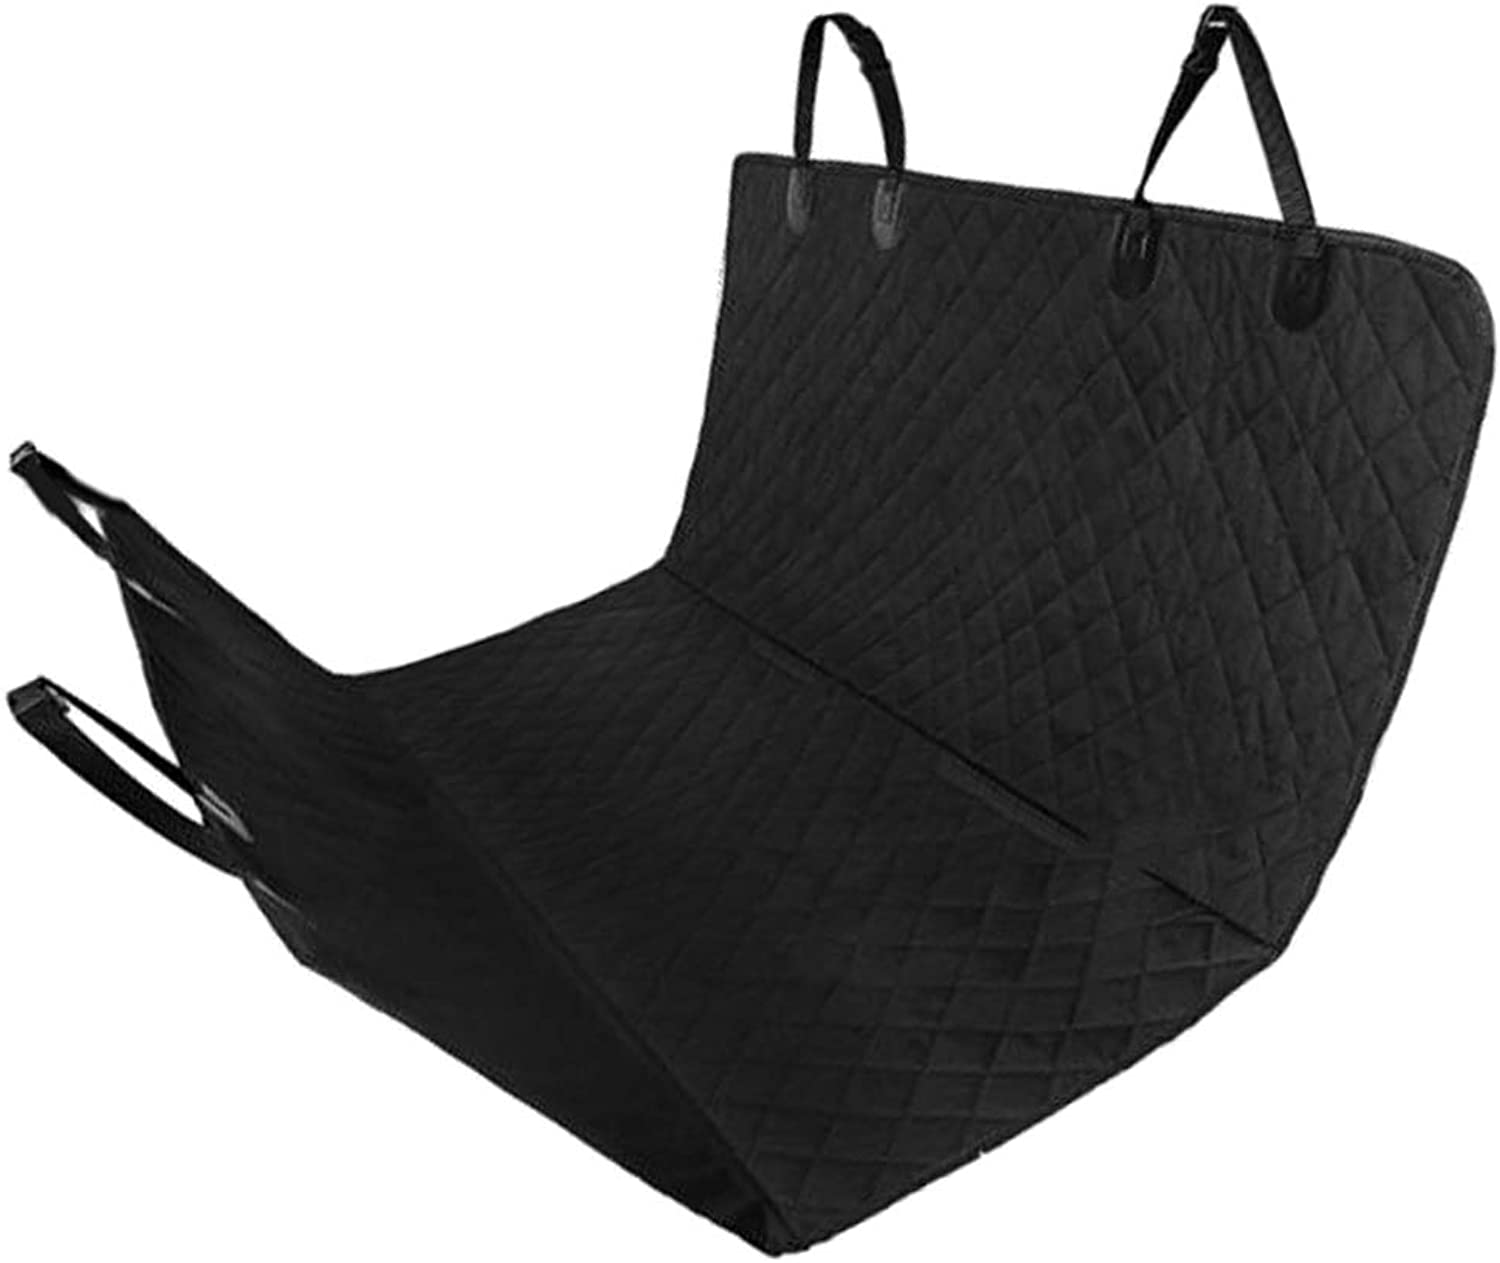 MagiDeal Dog Car Seat Covers Back Seat Black Waterproof Hammock for RV, Trucks, SUV